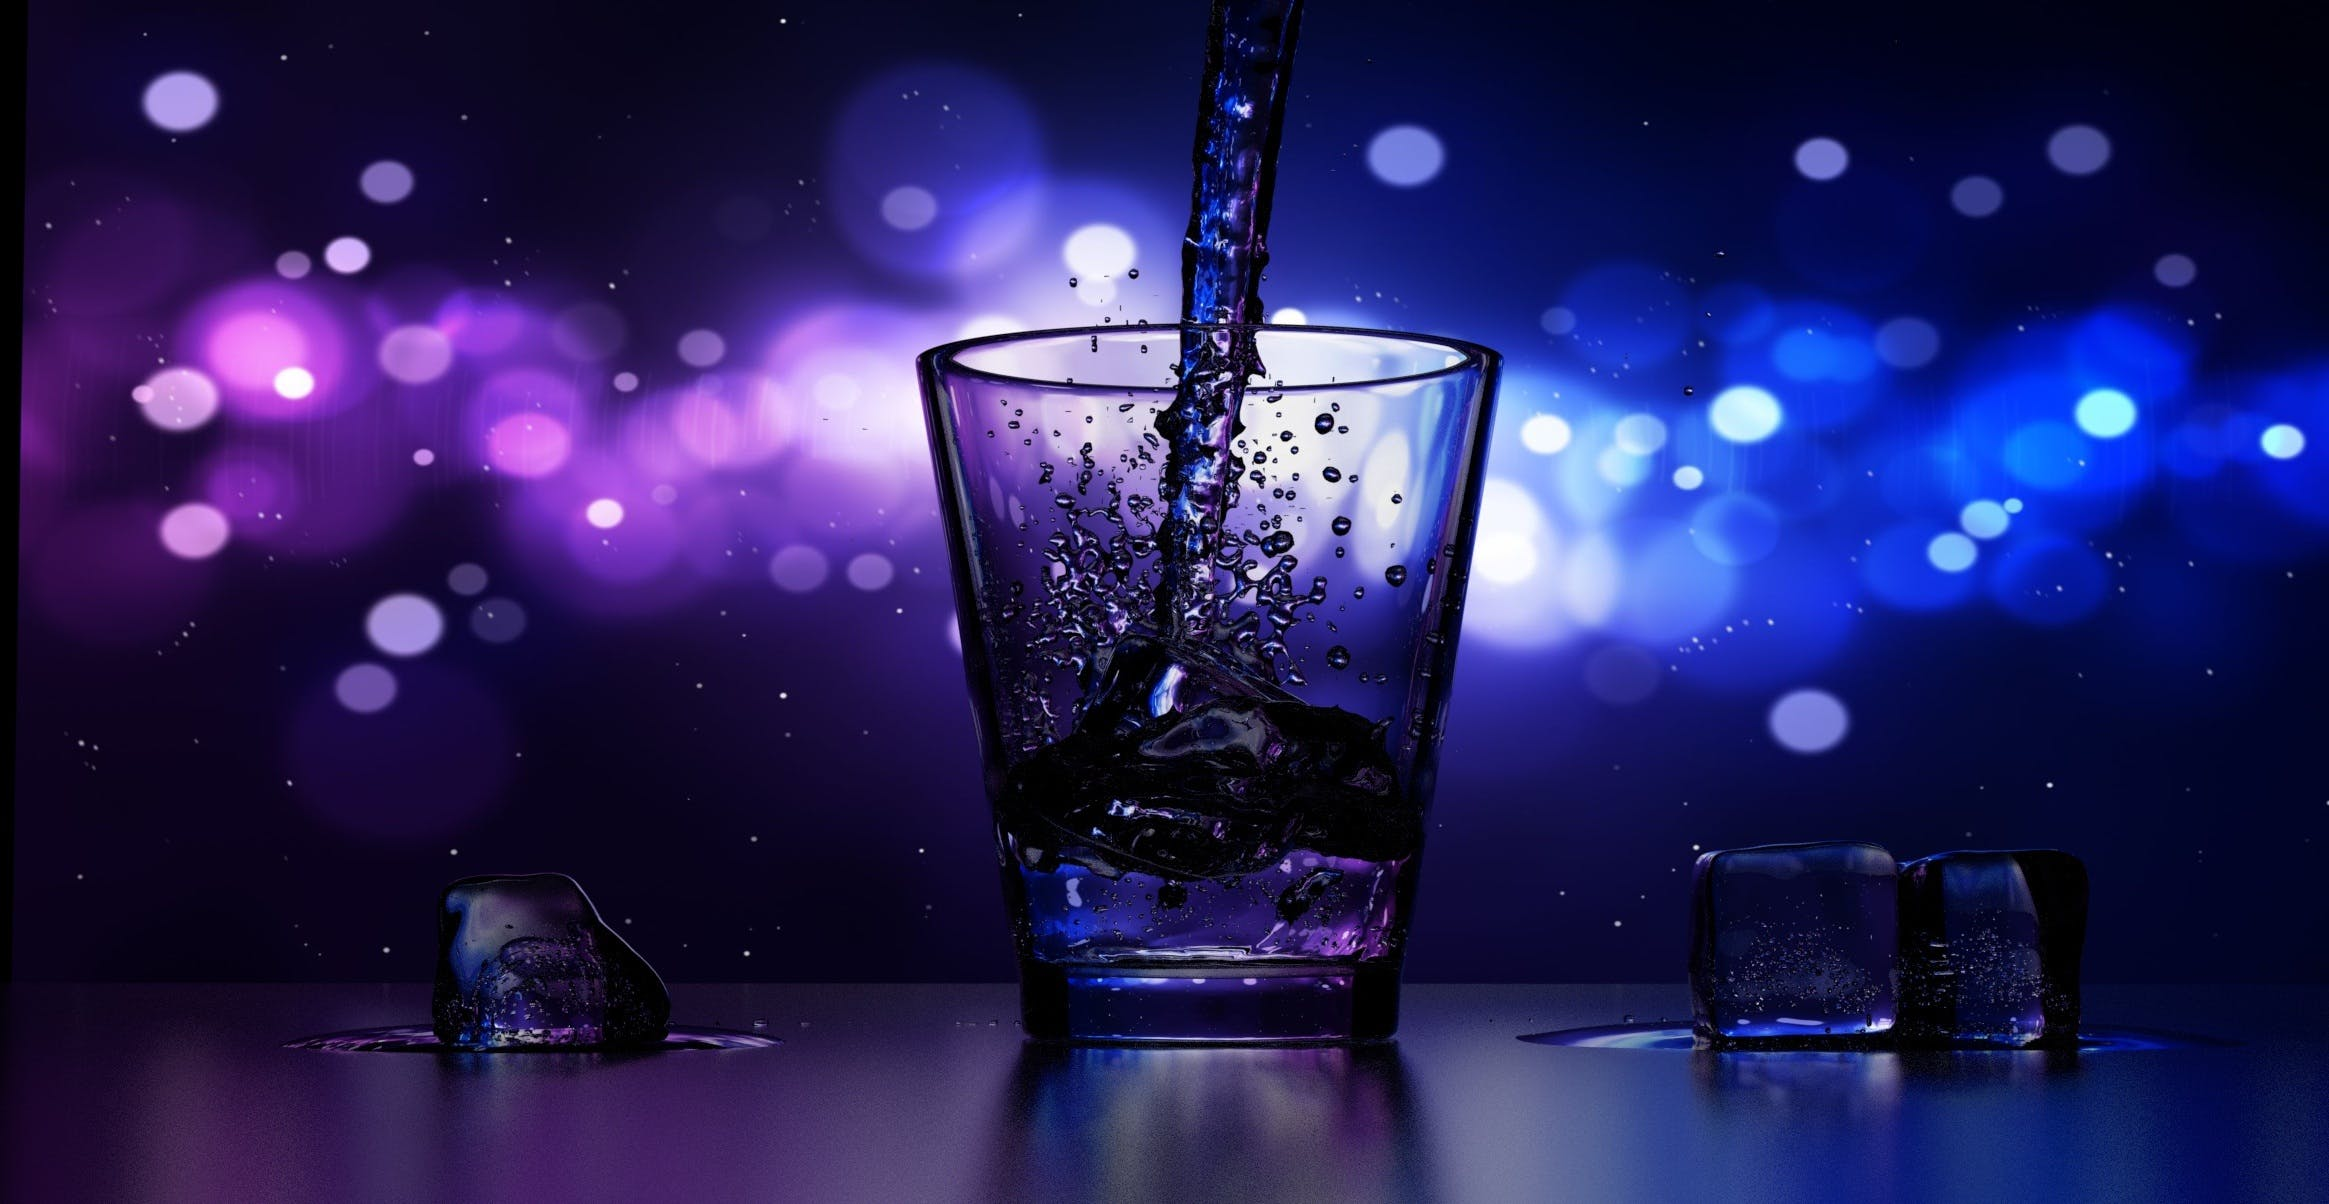 Close-up of Water Splashing in Drinking Glass